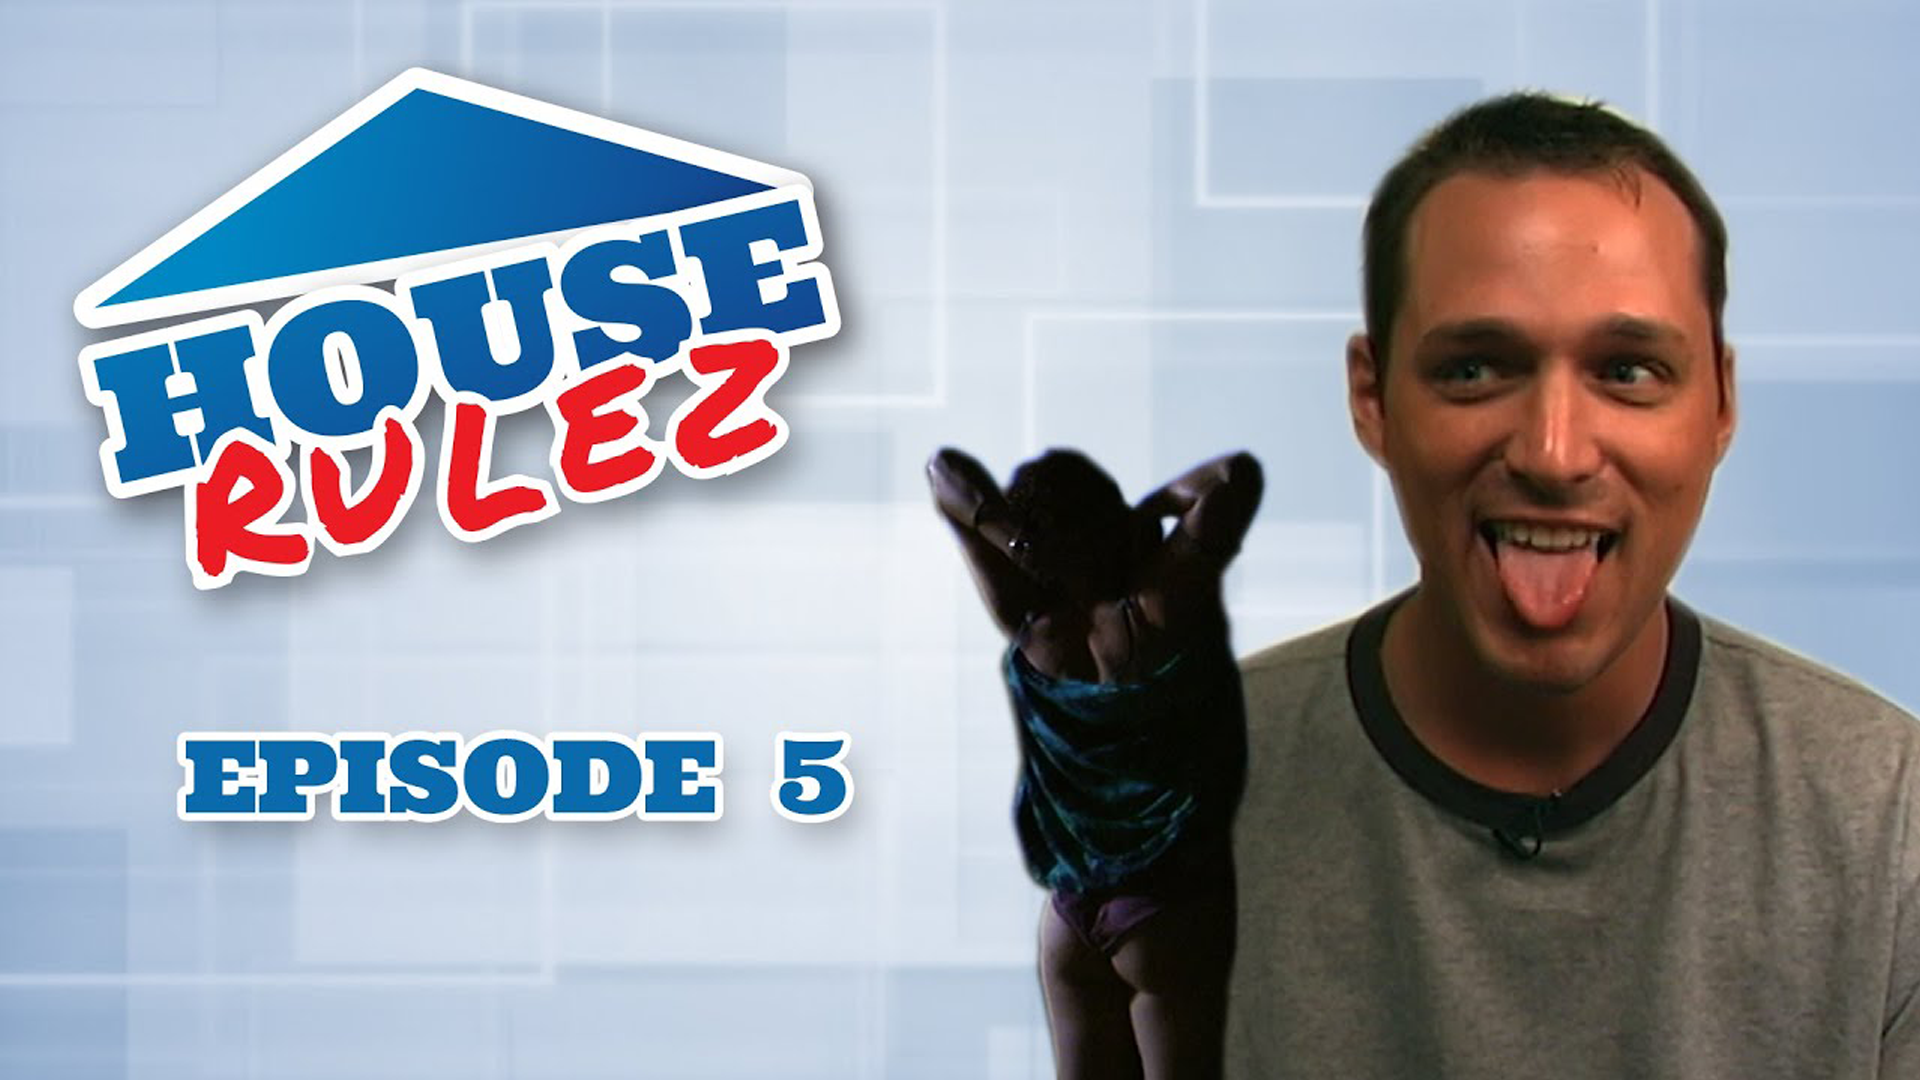 House Rulez Episode 5